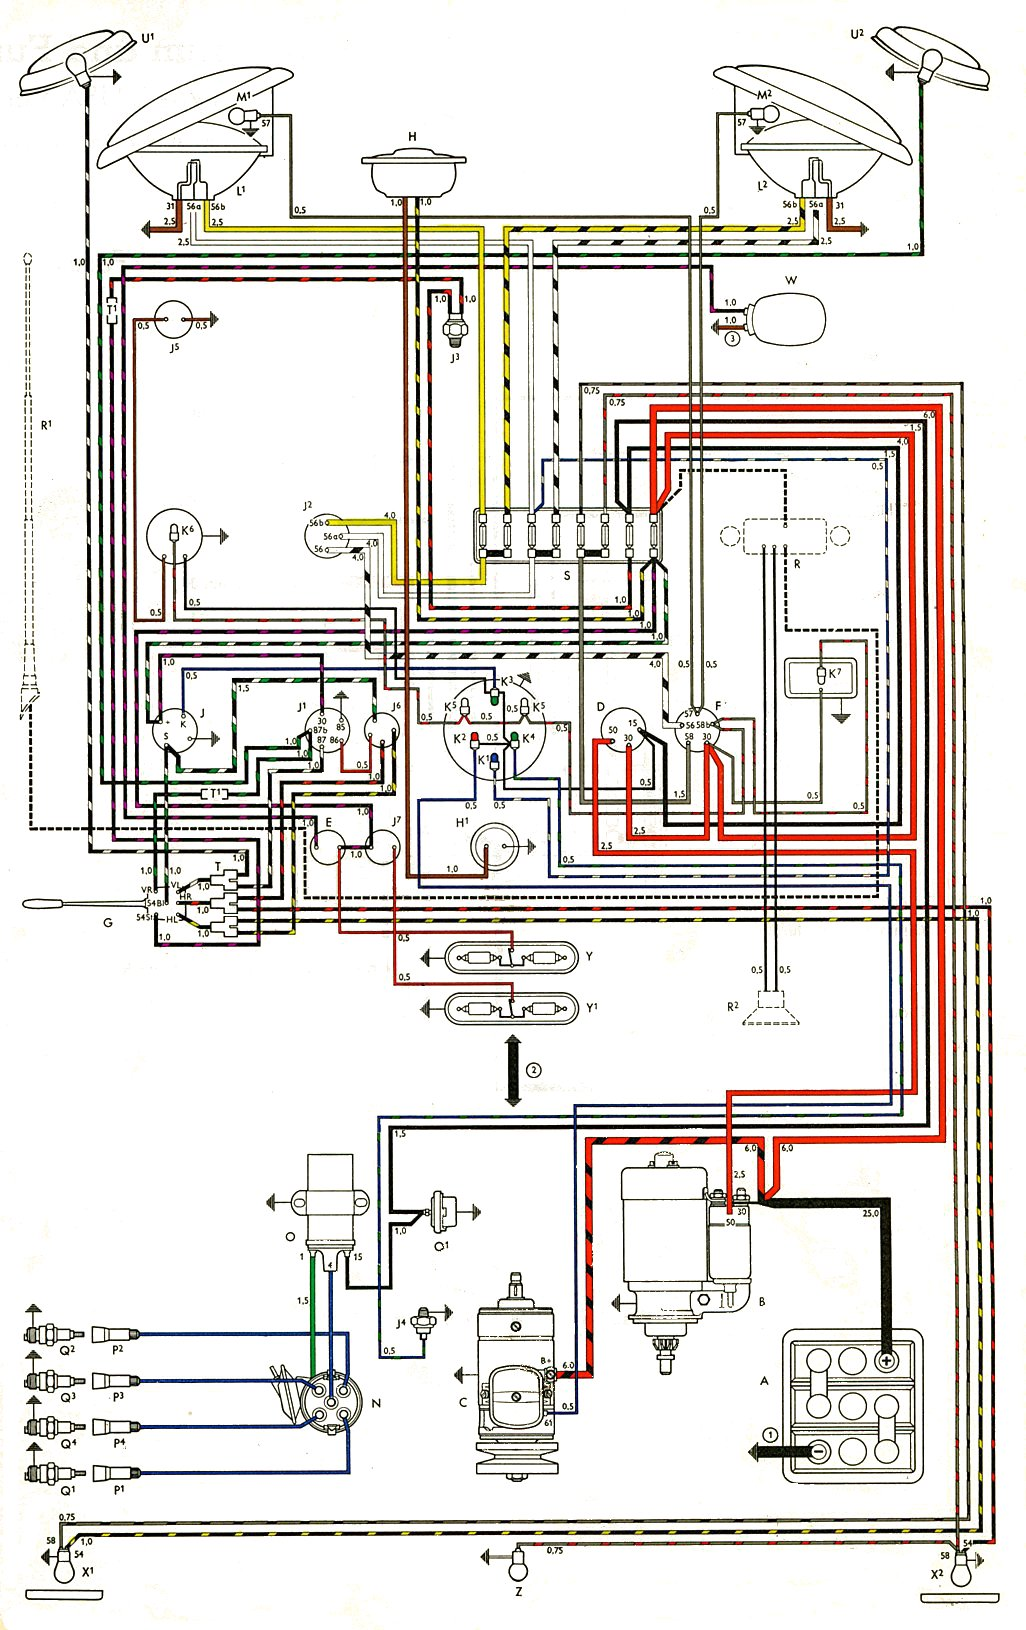 bus_63_USA thesamba com type 2 wiring diagrams Basic Electrical Wiring Diagrams at edmiracle.co